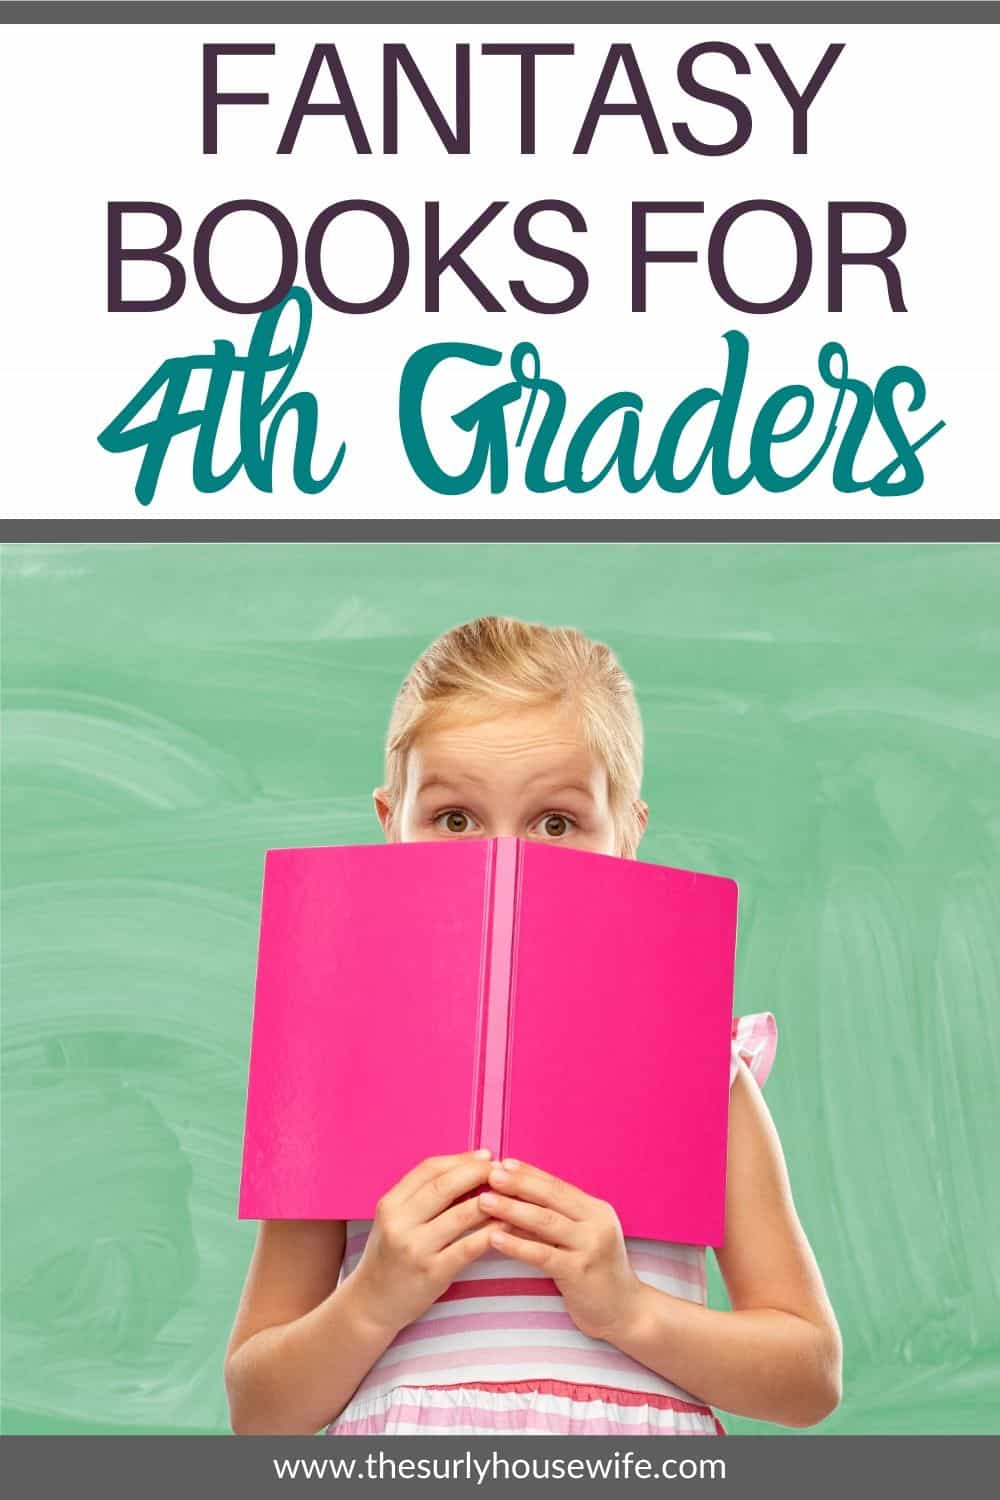 Nothing cures a reluctant reader like a good fantasy book. Check out this post for 10 of the best fantasy books for kids. Don't miss this post for some of the best books for 4th graders/10 year olds